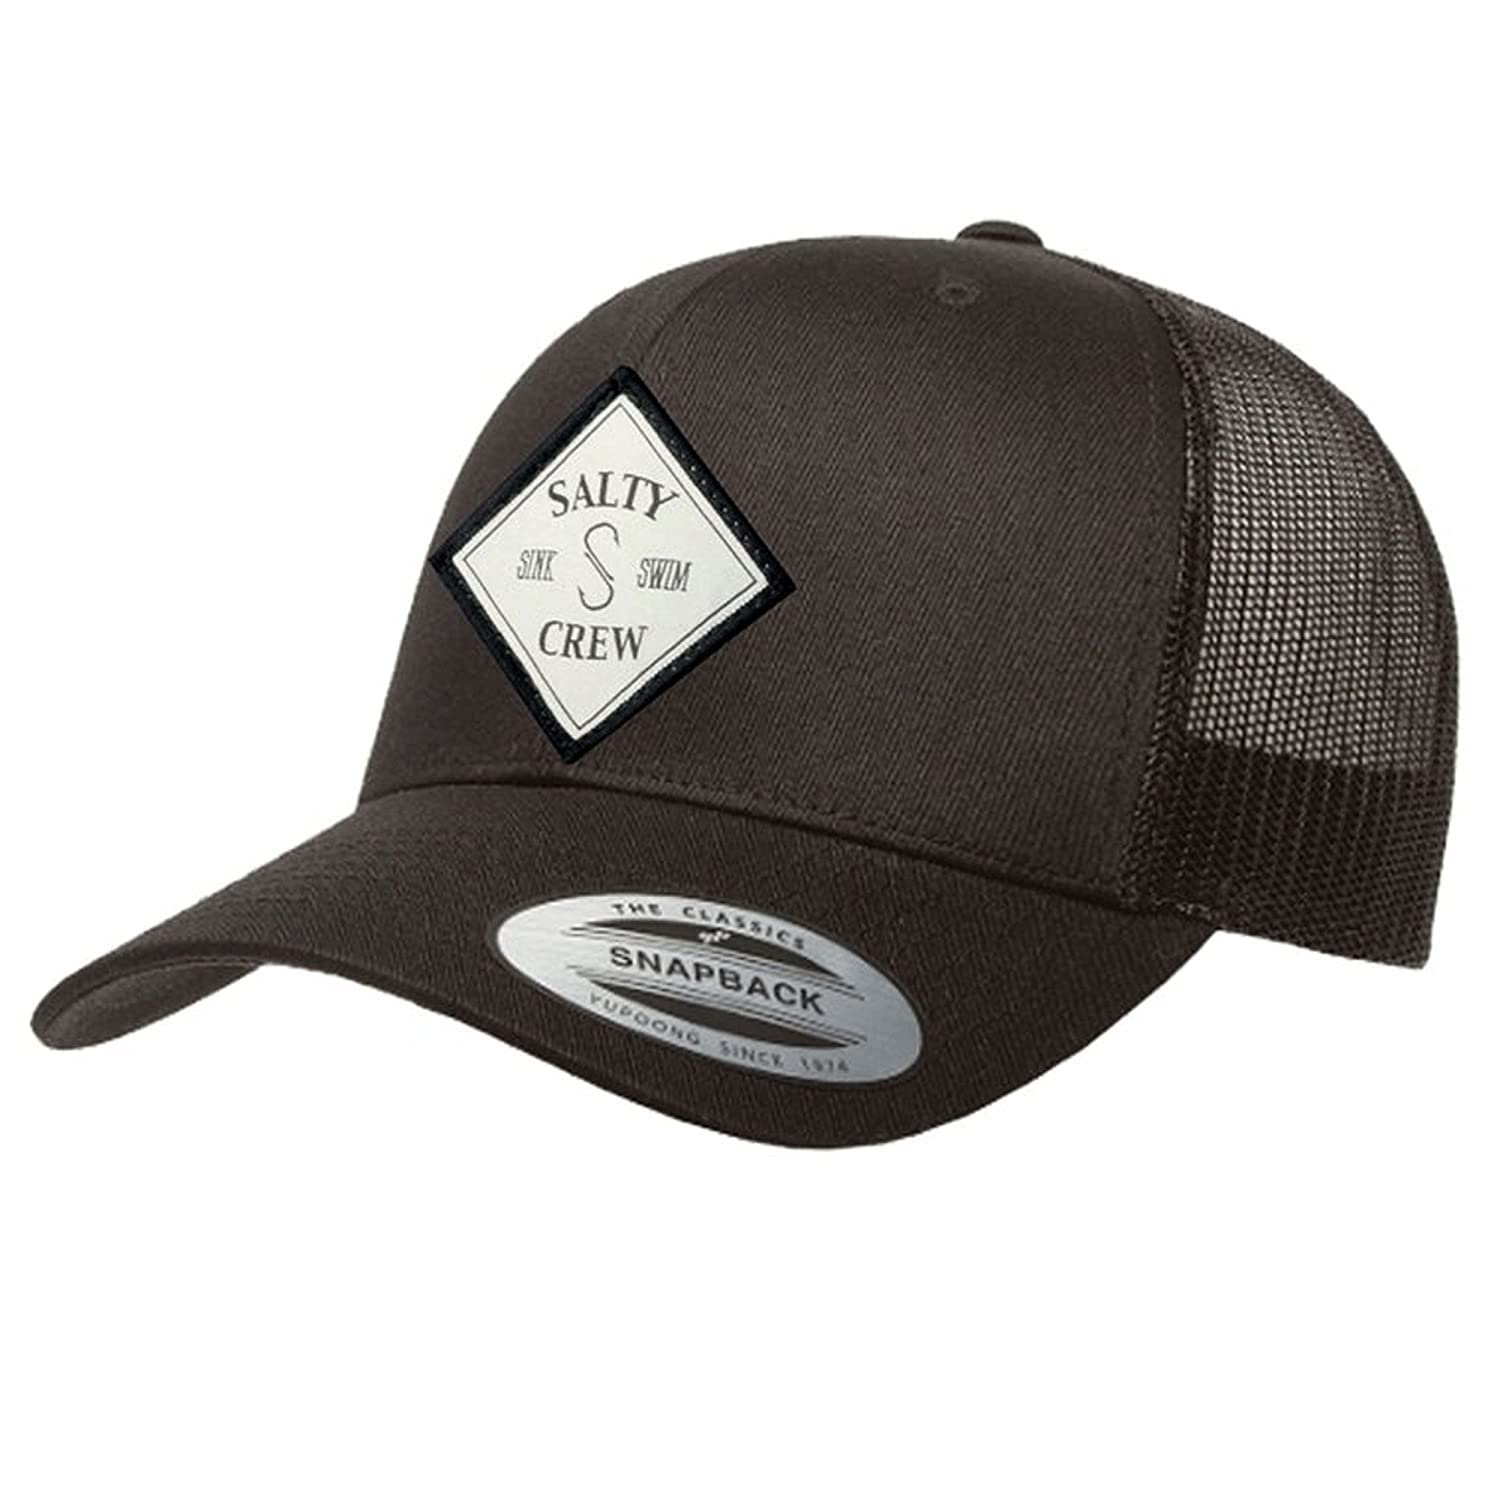 Salty Crew Men's Tippet Retro Trucker Hat